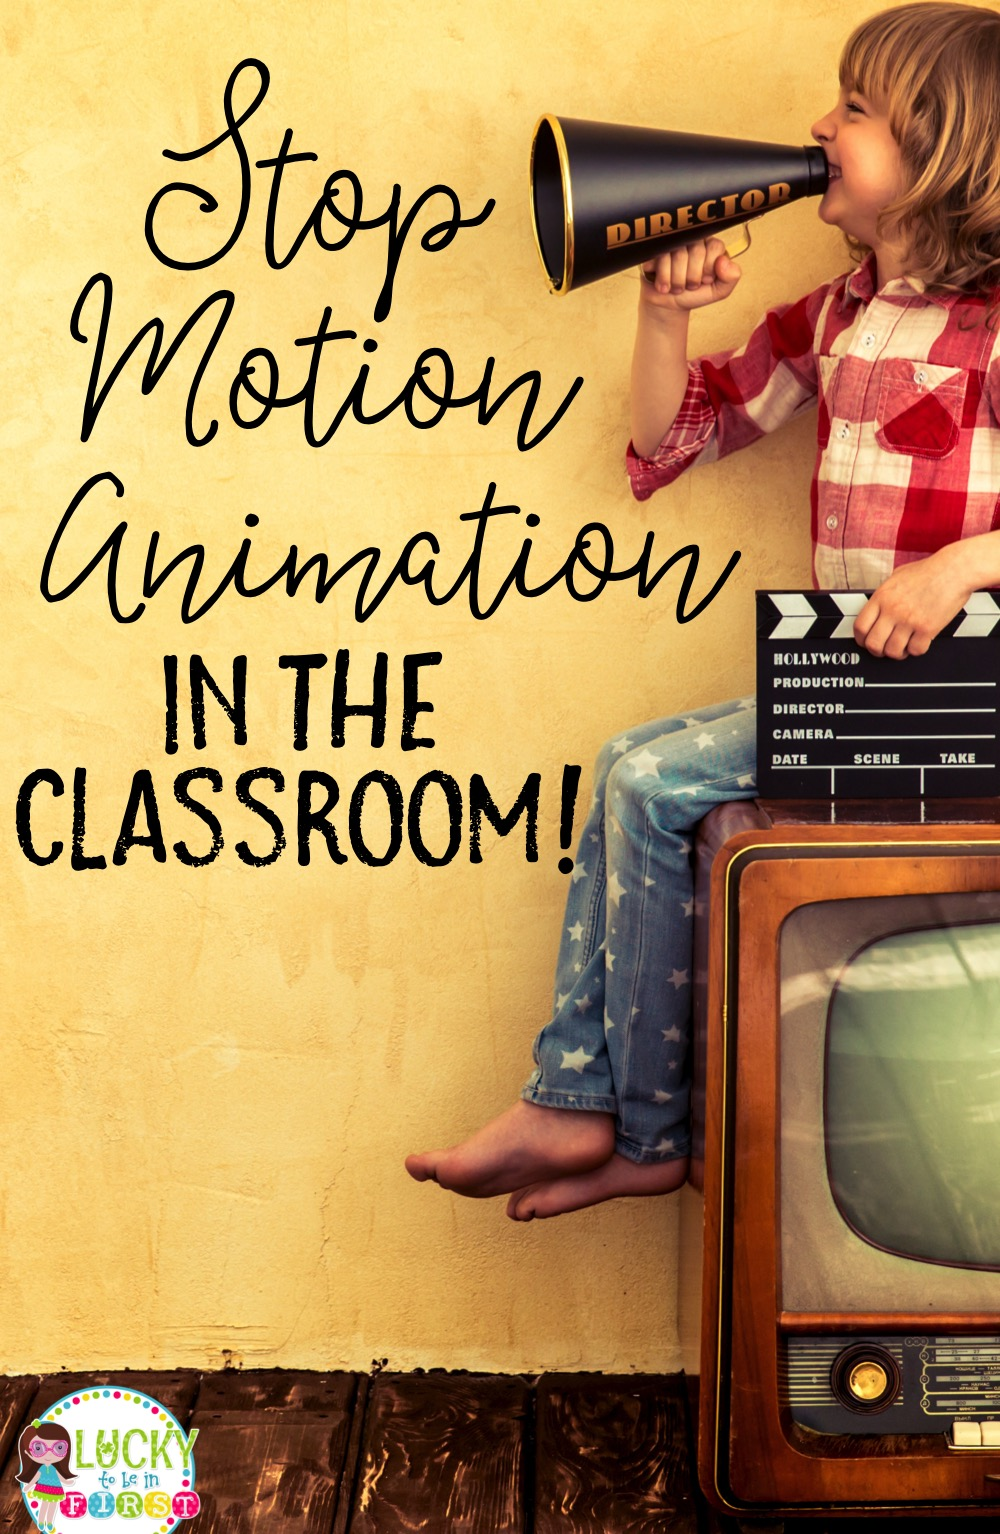 See how easy it is to use Stop-Motion Animation in your classroom!